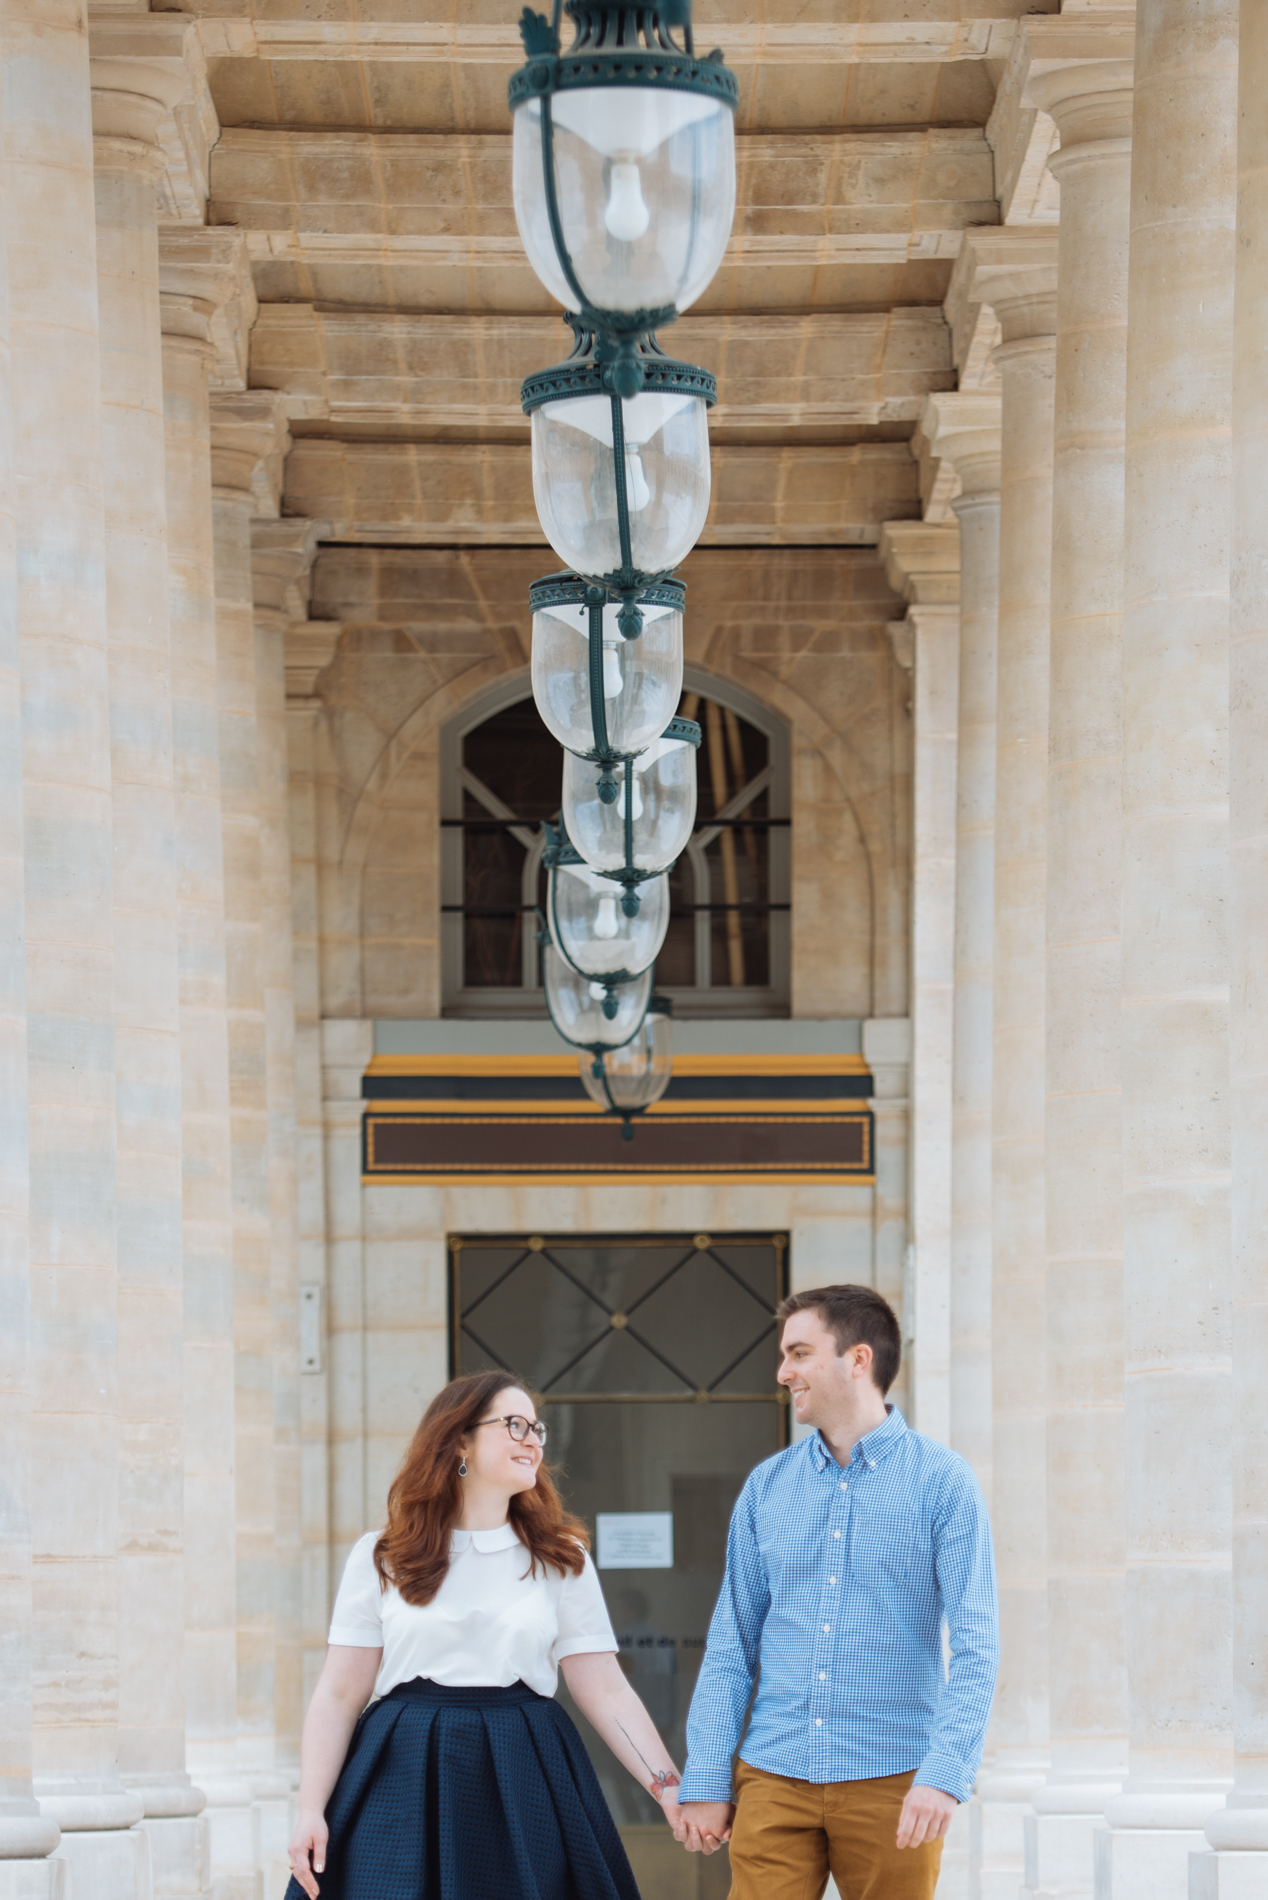 seance-engagement-paris-maldeme-photographe-palais royal-15